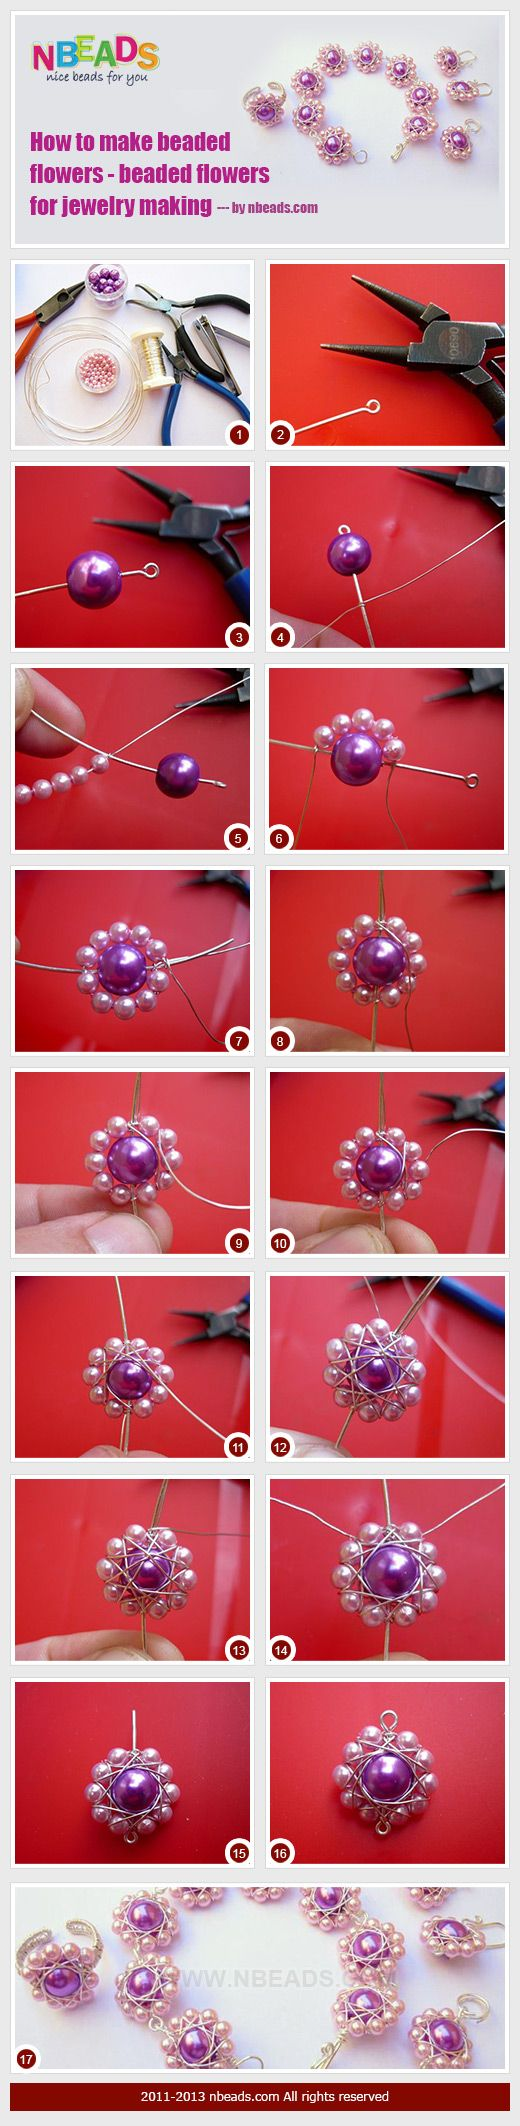 how to make beaded flowers - beaded flowers for jewelry making